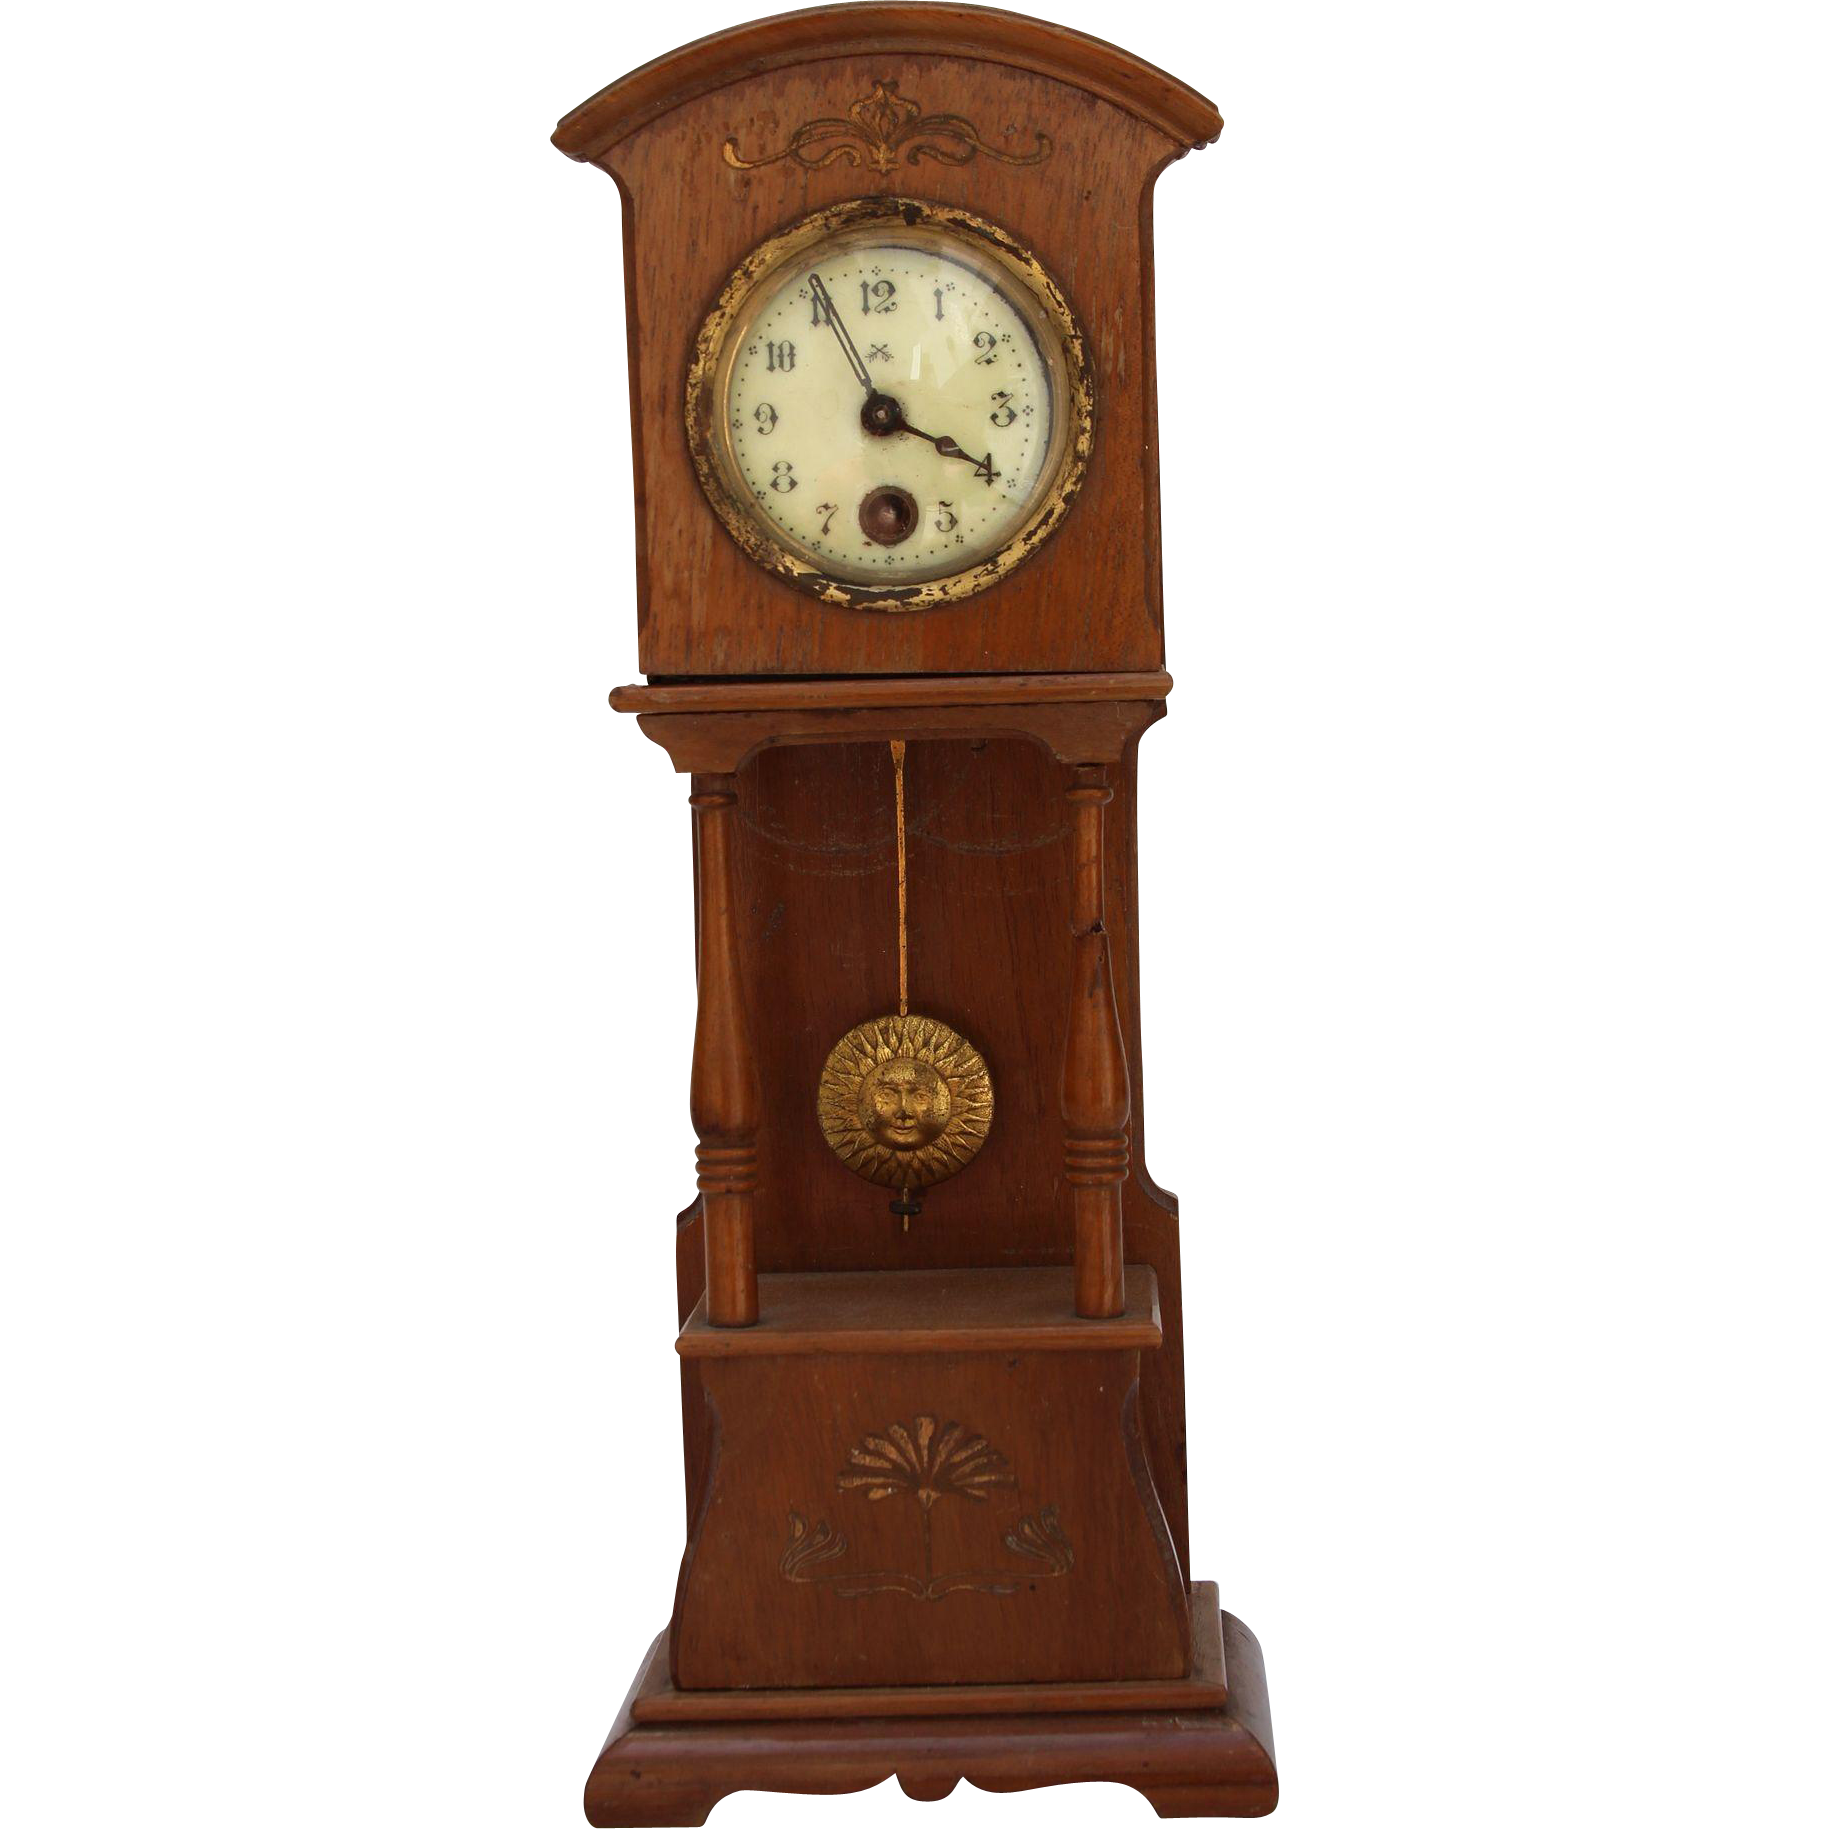 Grandfather clock png. Art nouveau dollhouse early